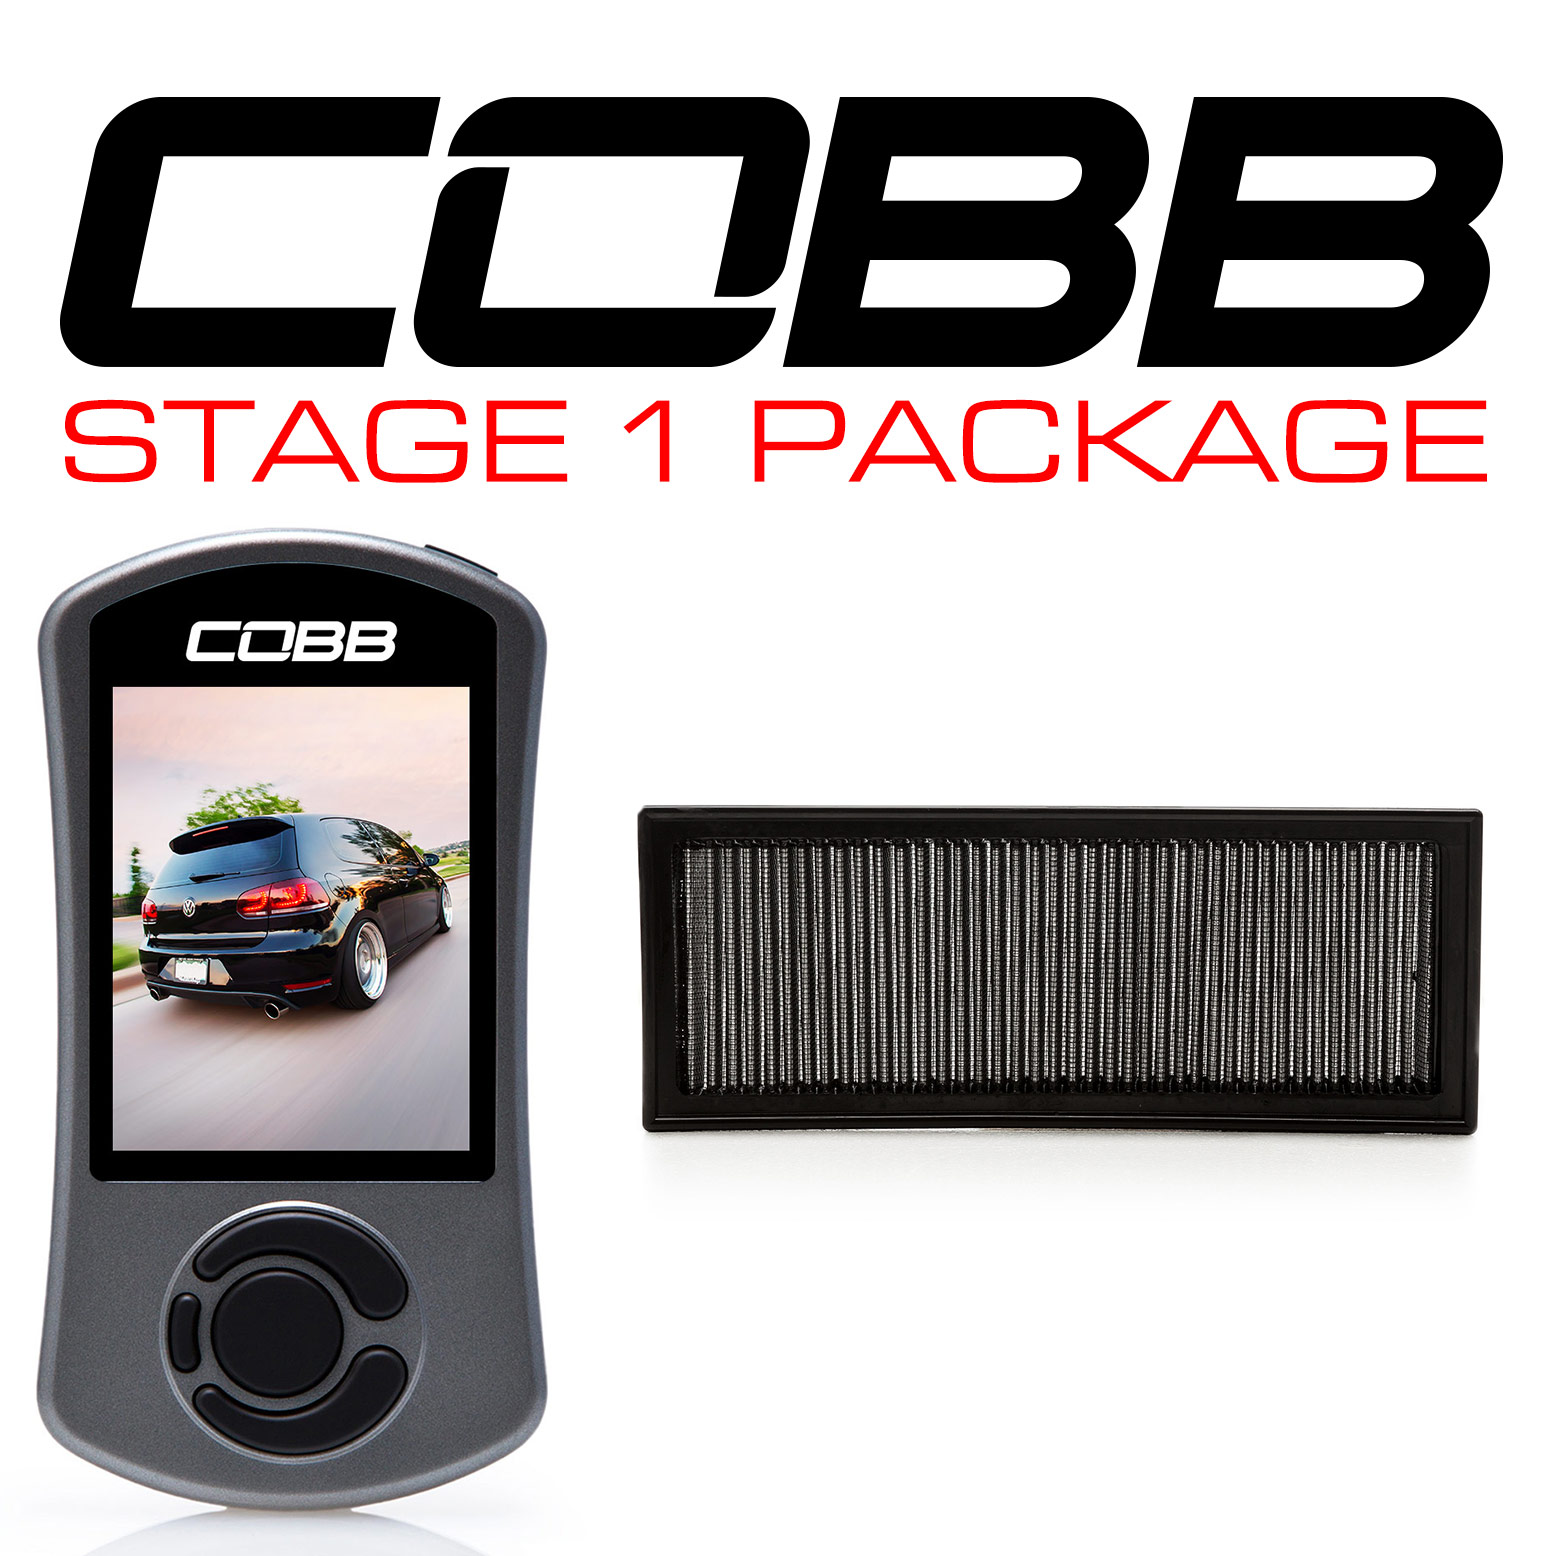 Volkswagen Stage 1 Power Package GTI (Mk6) 2010-2014 USDM, 2009-2013 WM